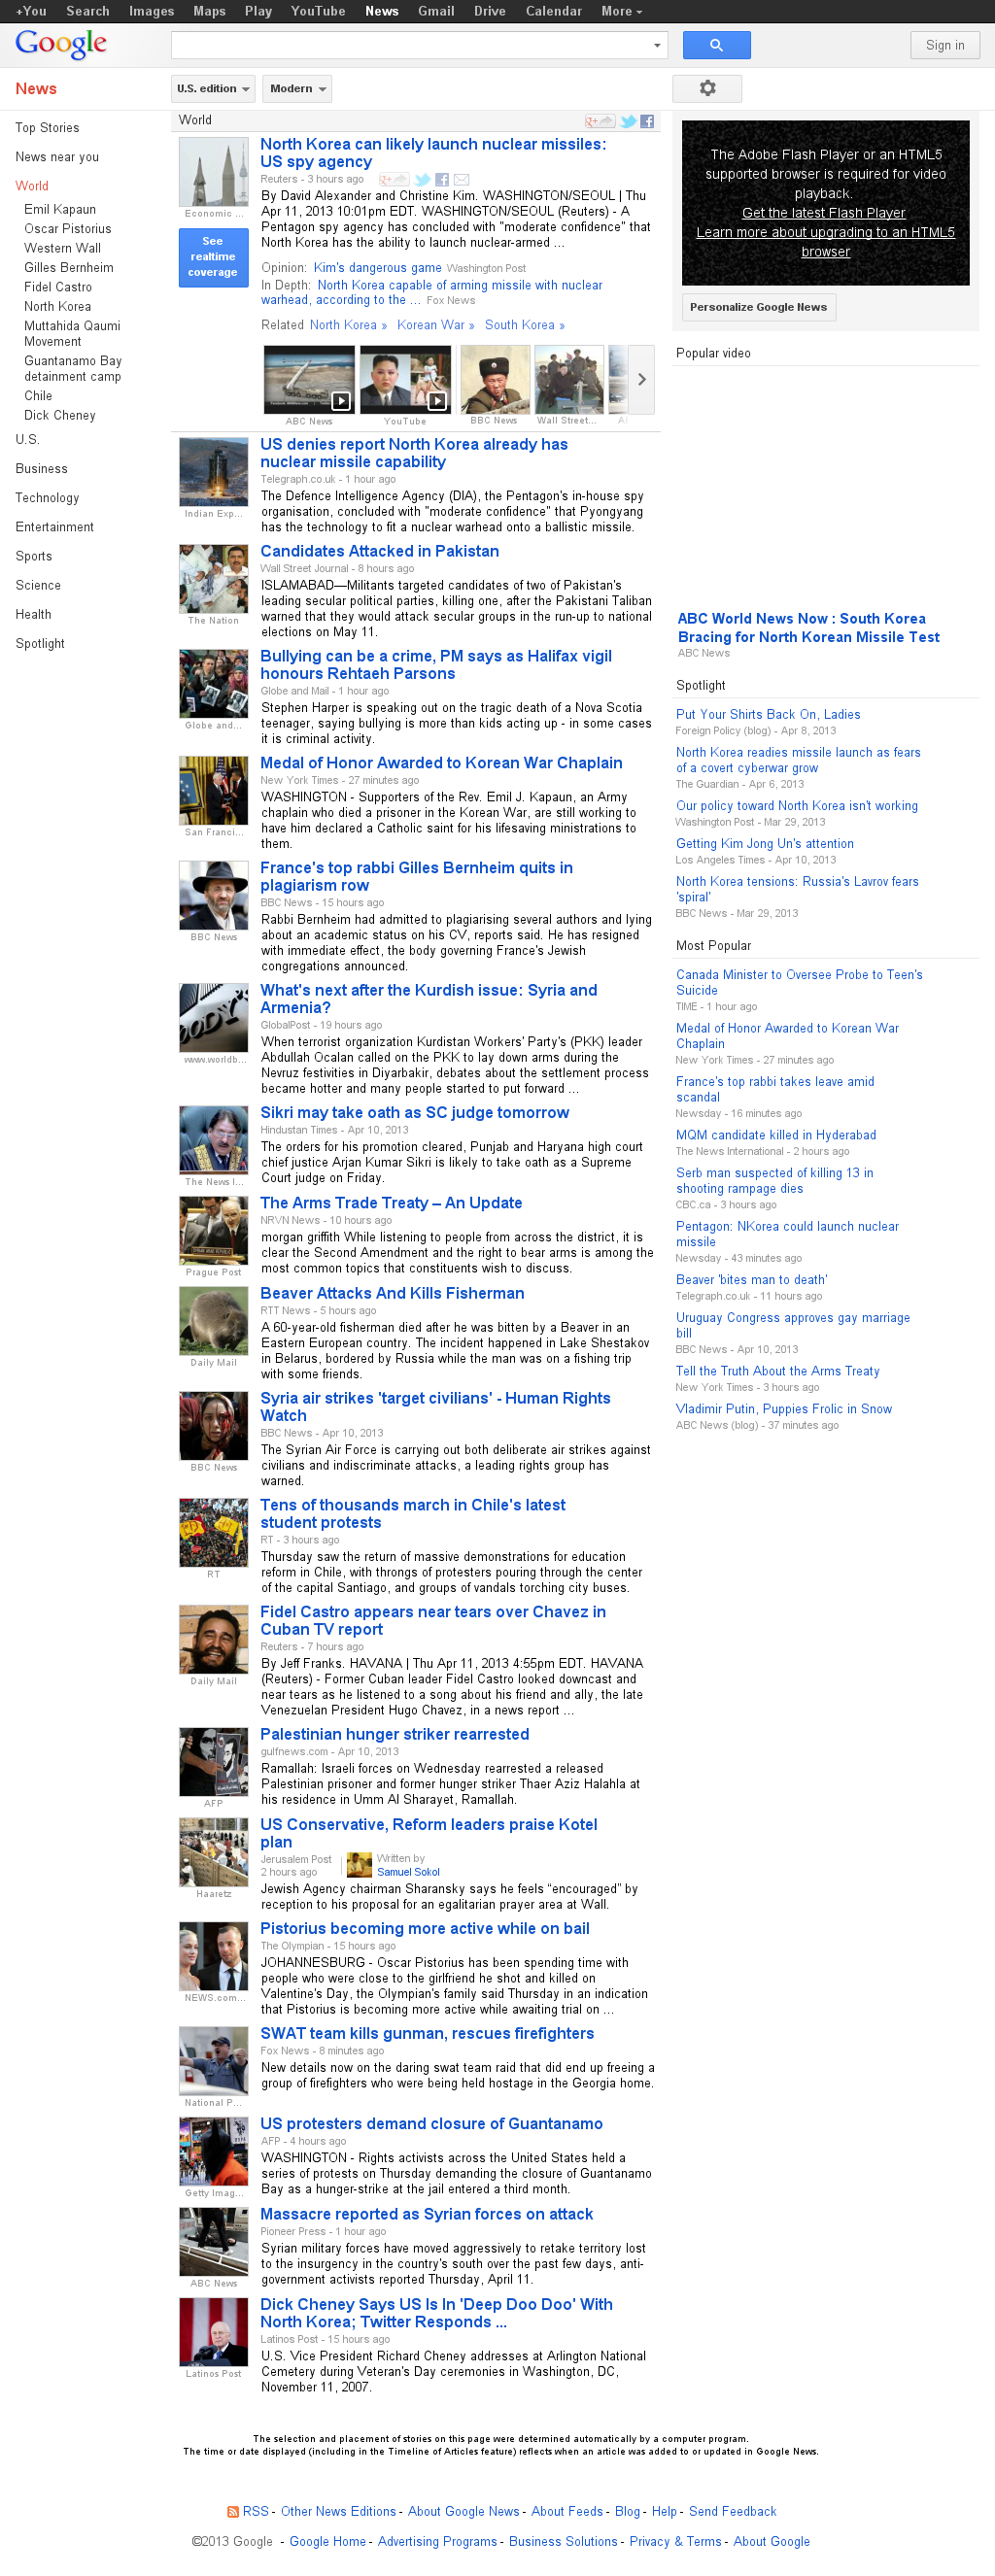 Google News: World at Friday April 12, 2013, 4:11 a.m. UTC